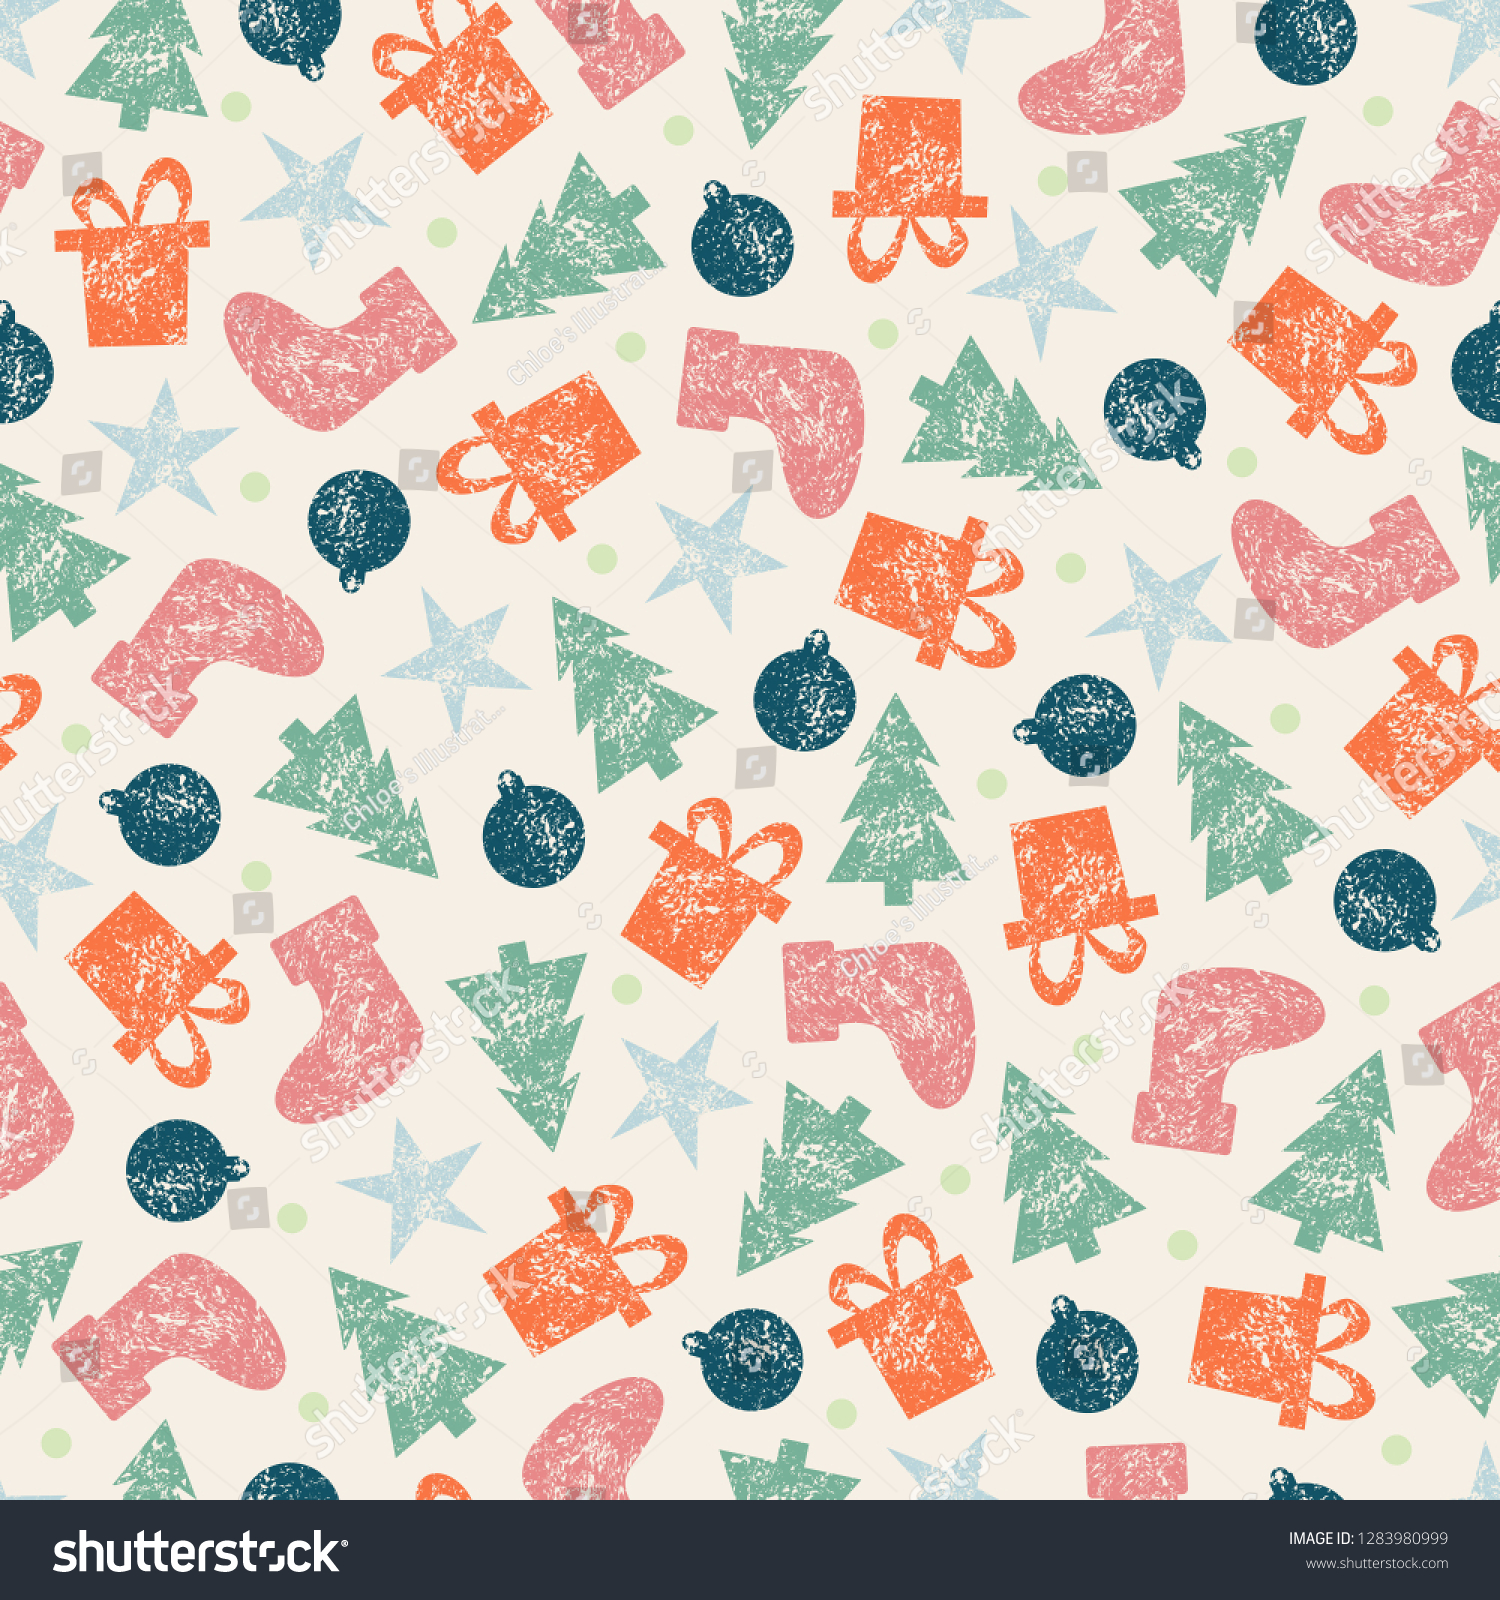 stock-vector-candy-sweet-pastel-xmas-vec